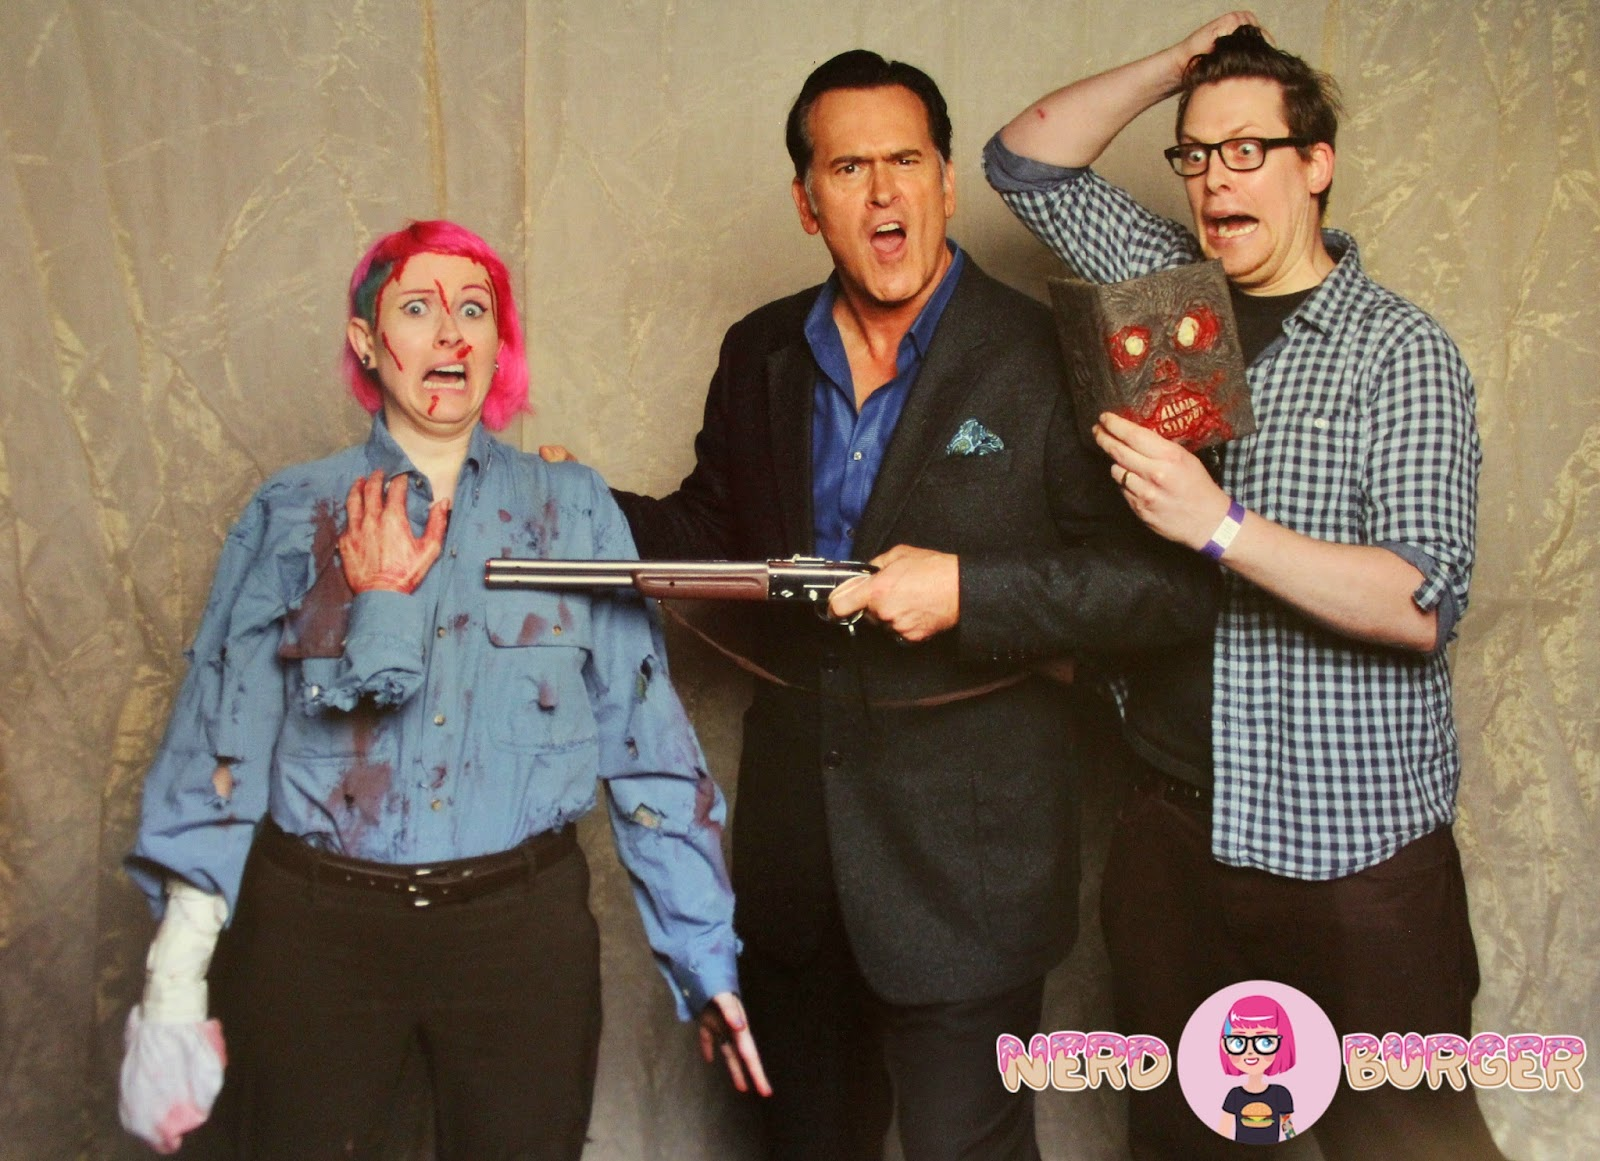 Nerd Burger Meeting Bruce Campbell